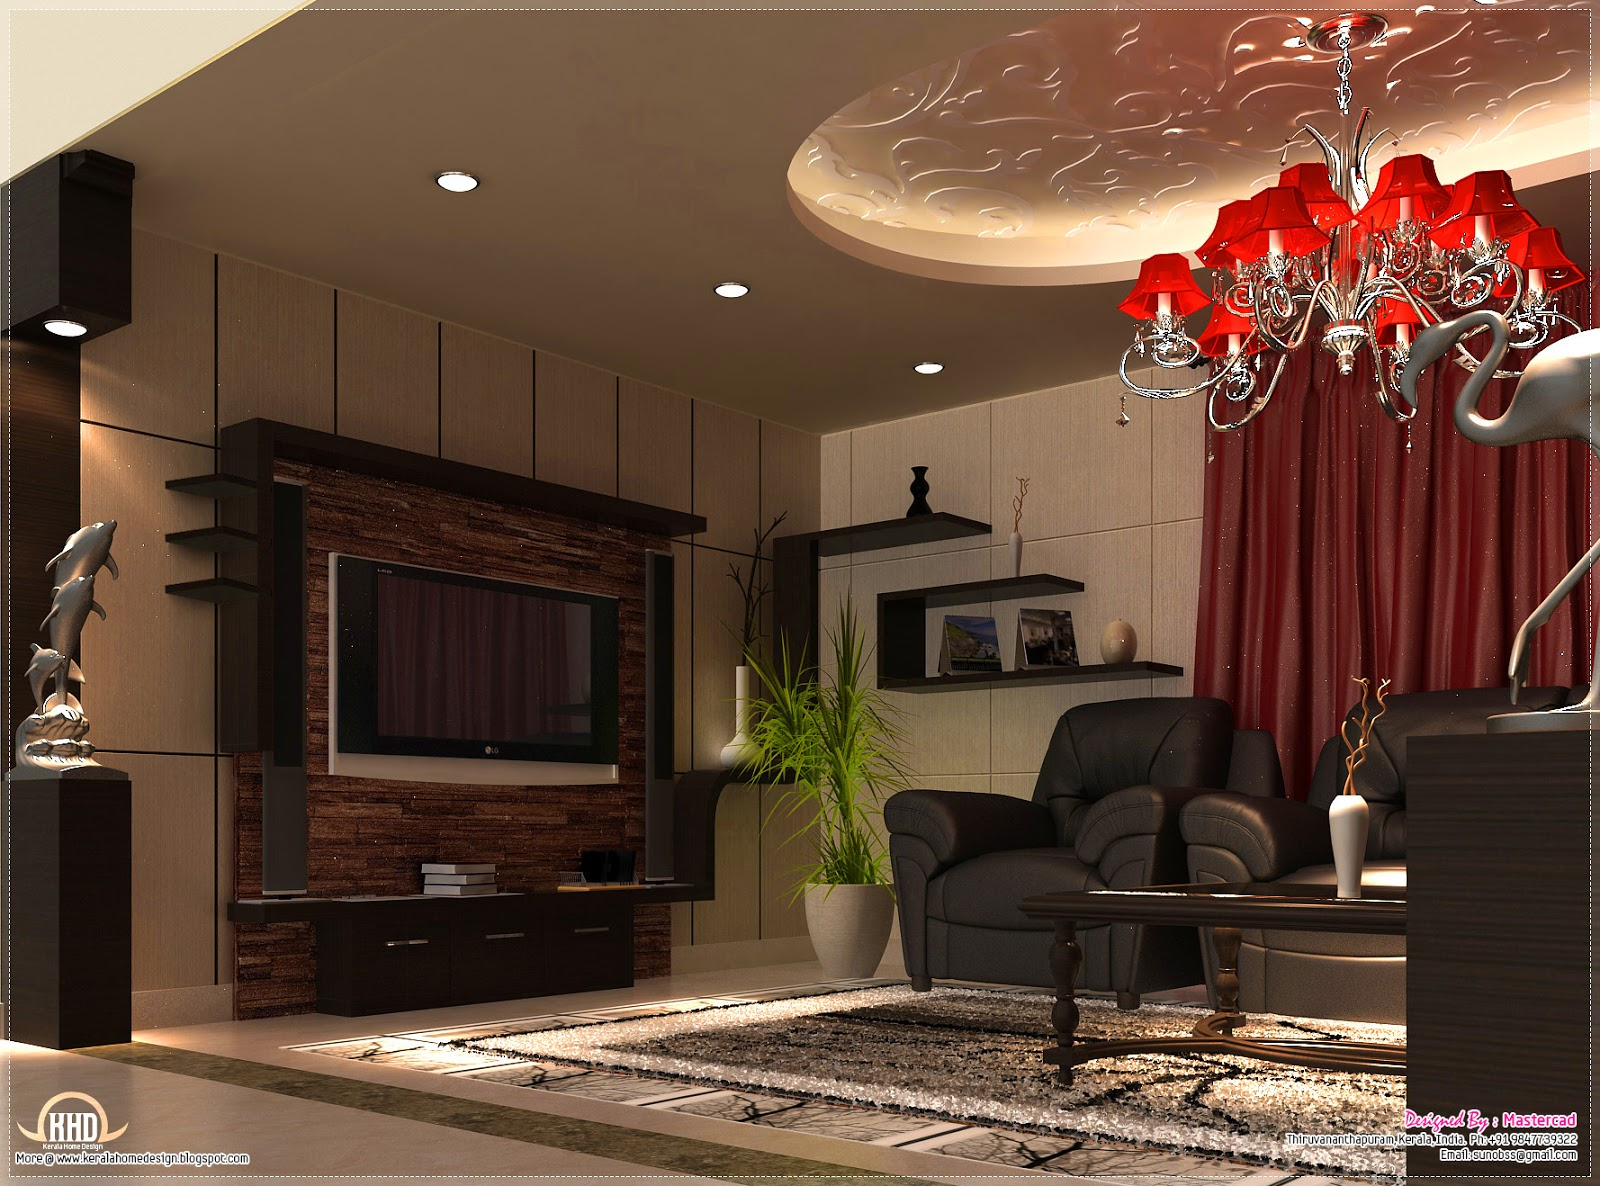 Interior design ideas kerala home design and floor plans for Interior designs in kerala